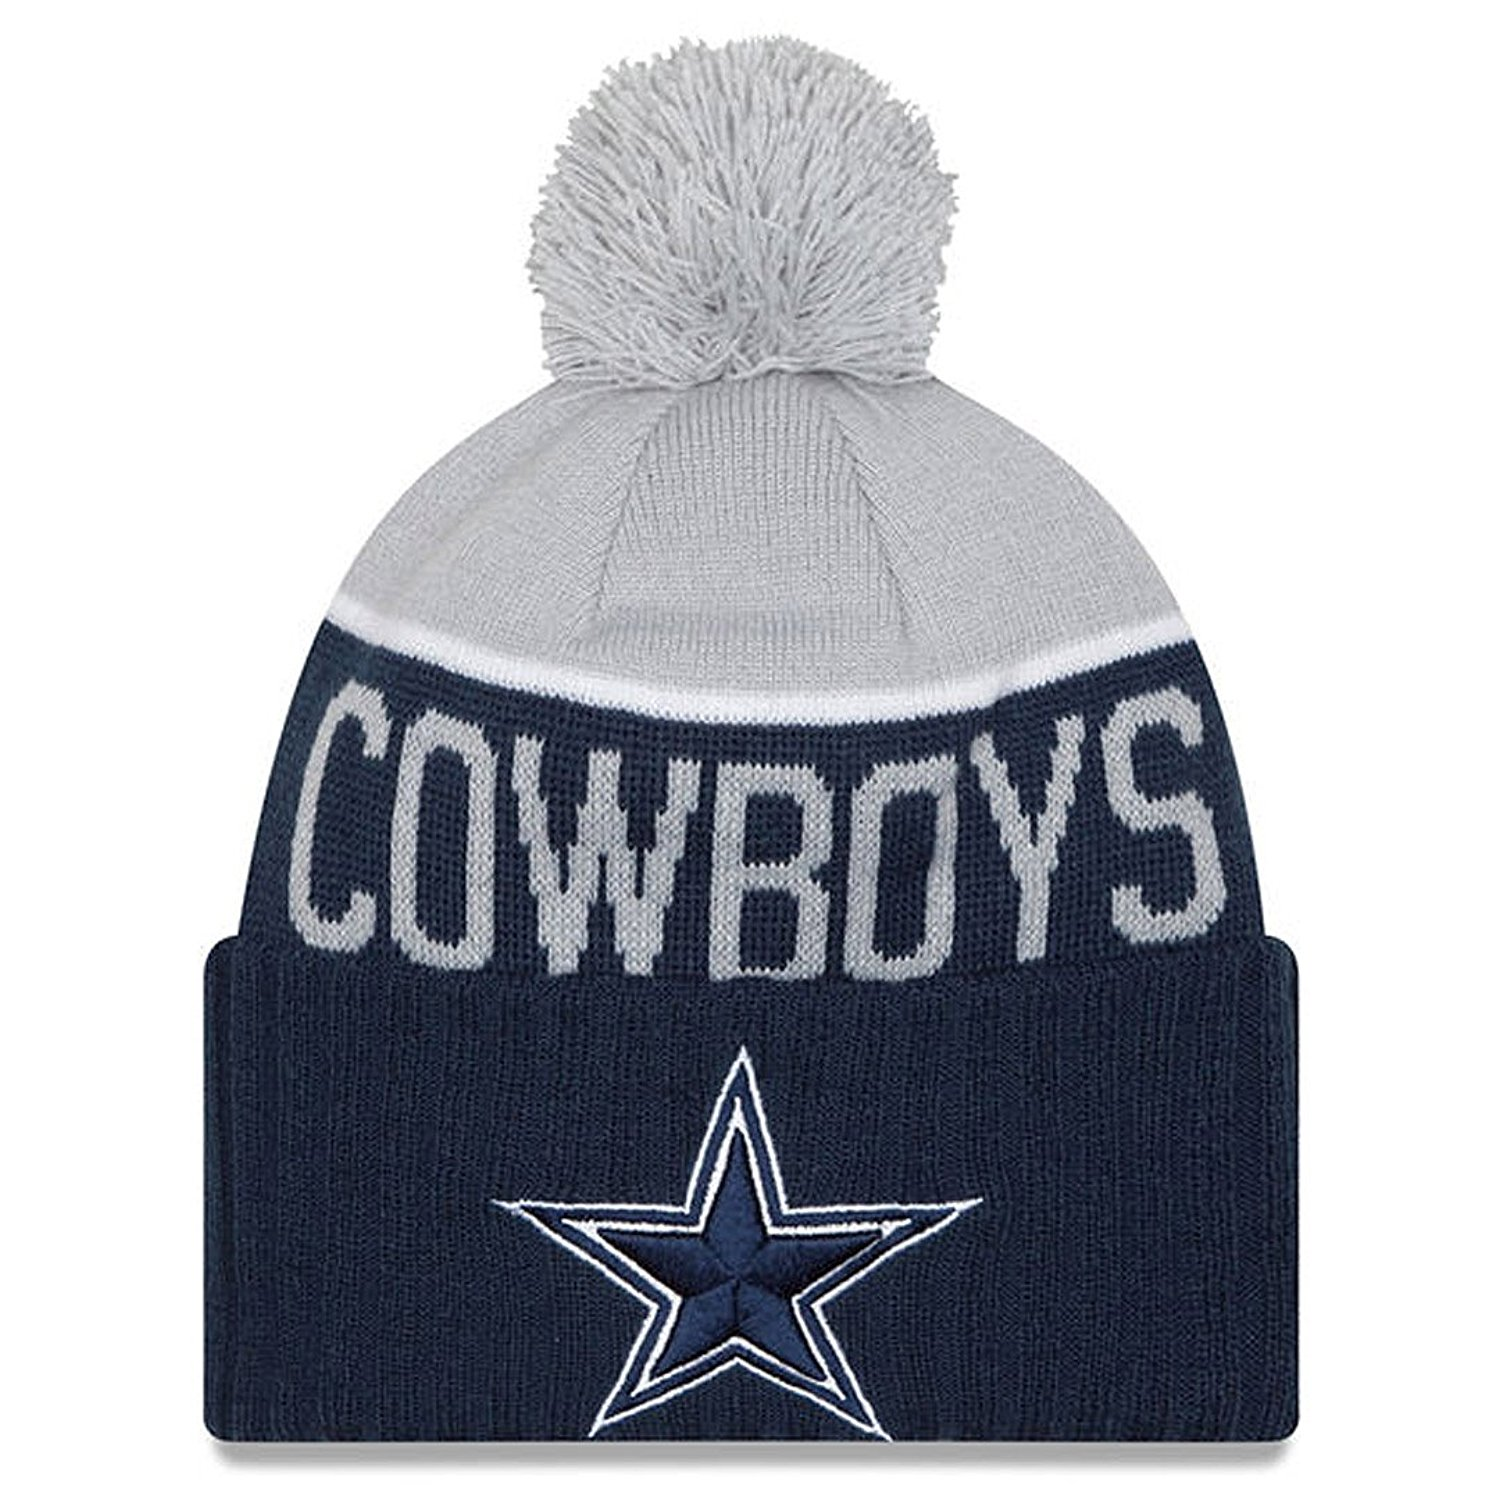 447eb84e0 Get Quotations · Men's Dallas Cowboys NFL New Era On Field Sport Knit Hat